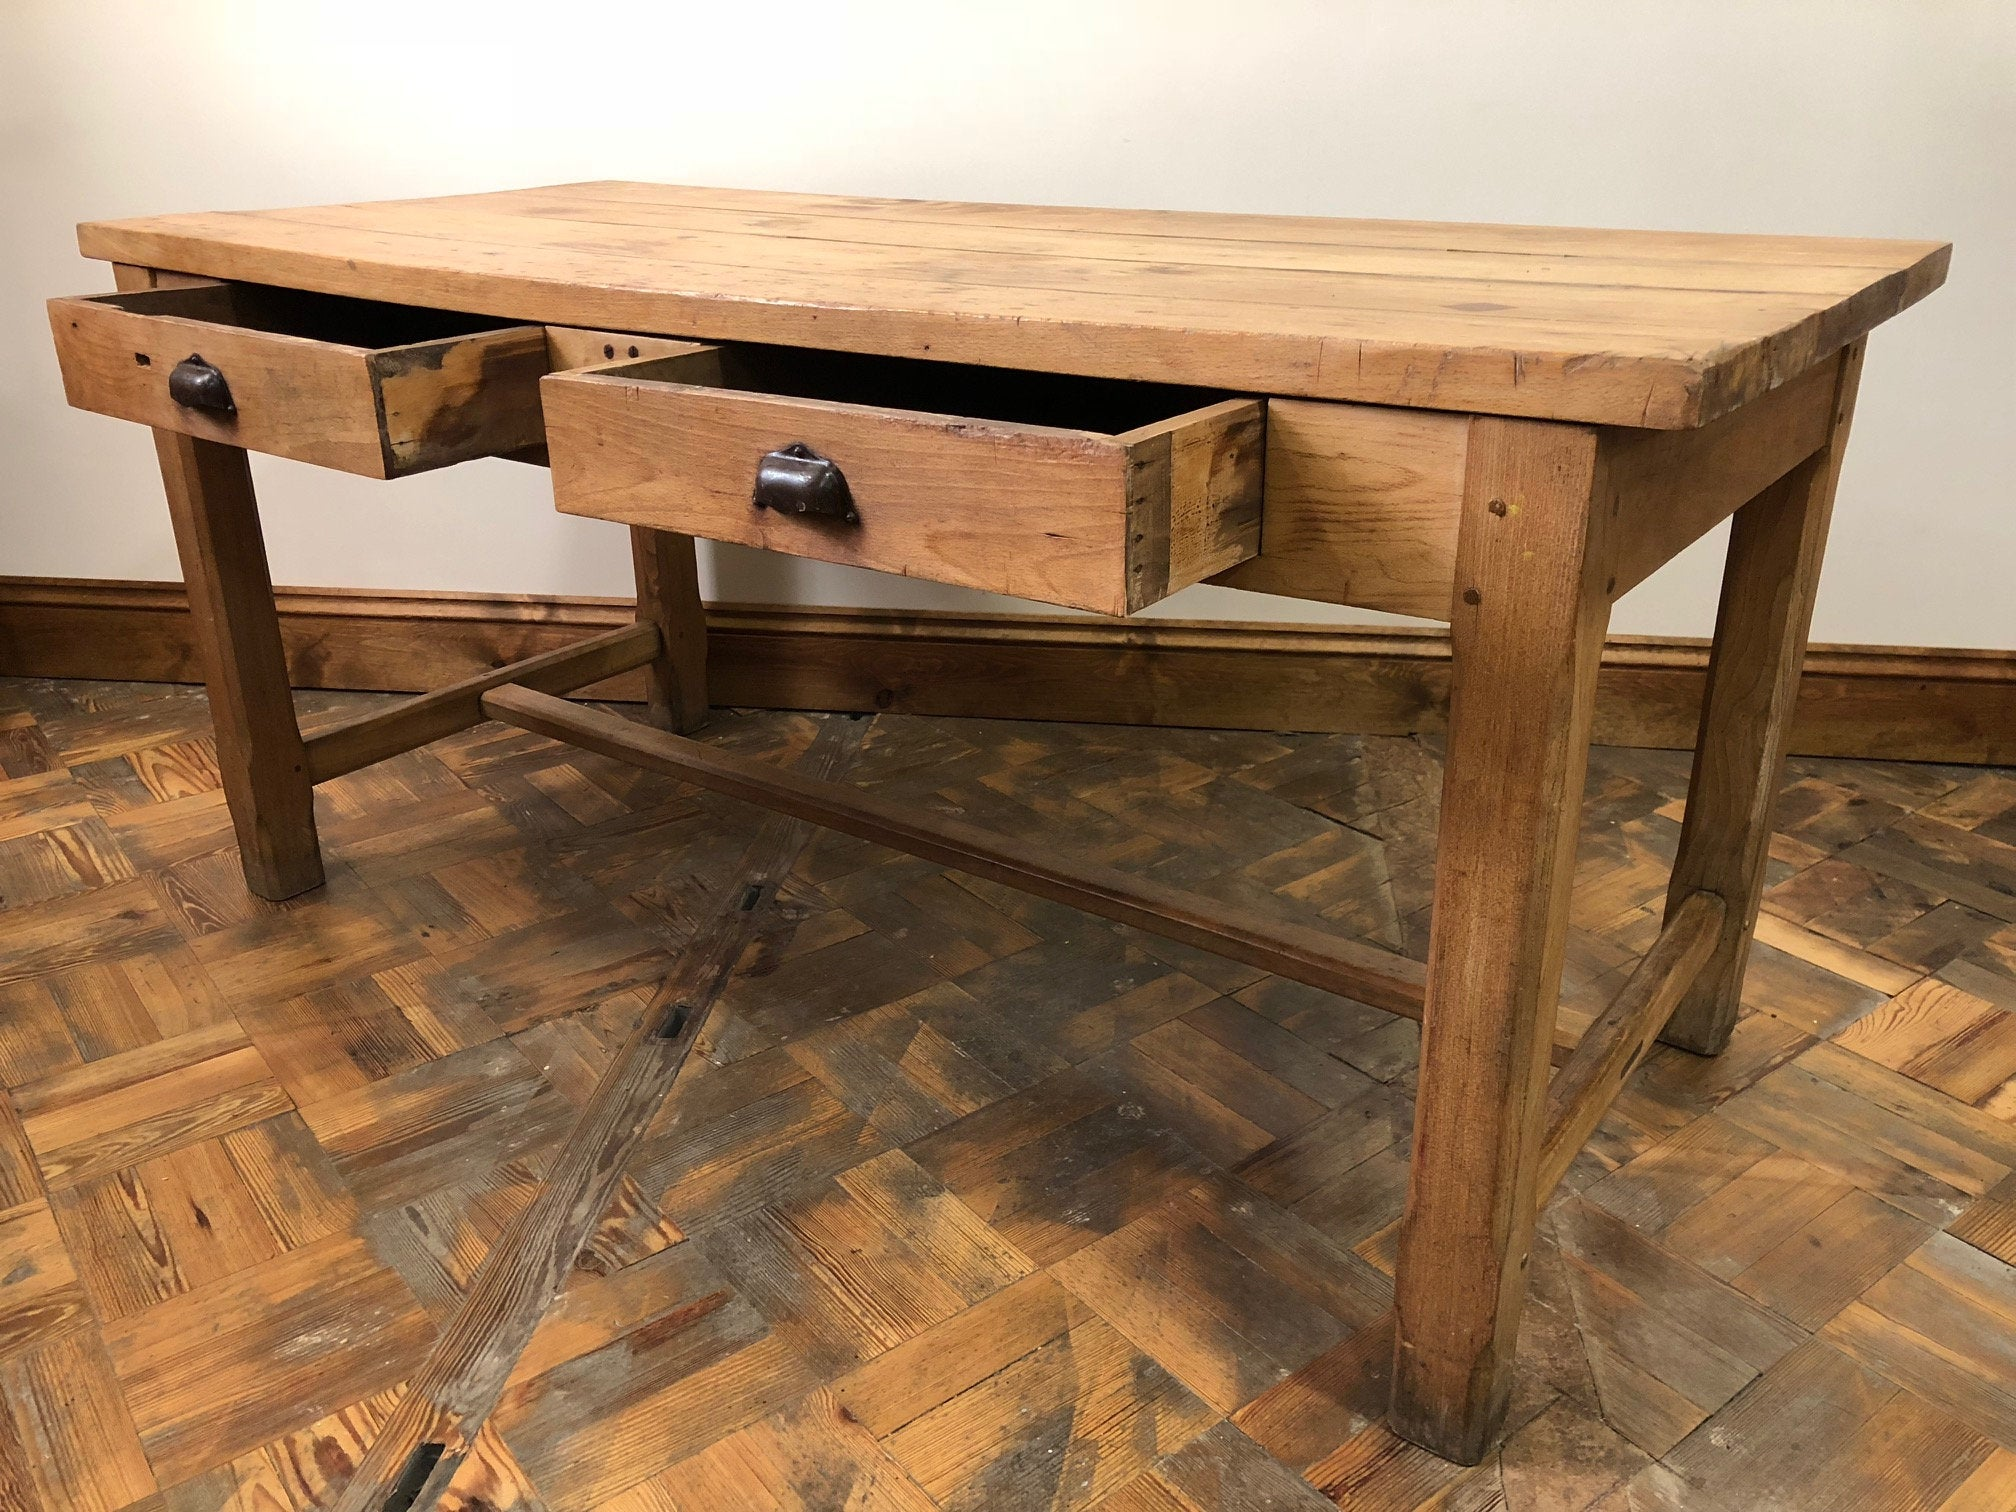 Antique dairy table, £775, Etsy.